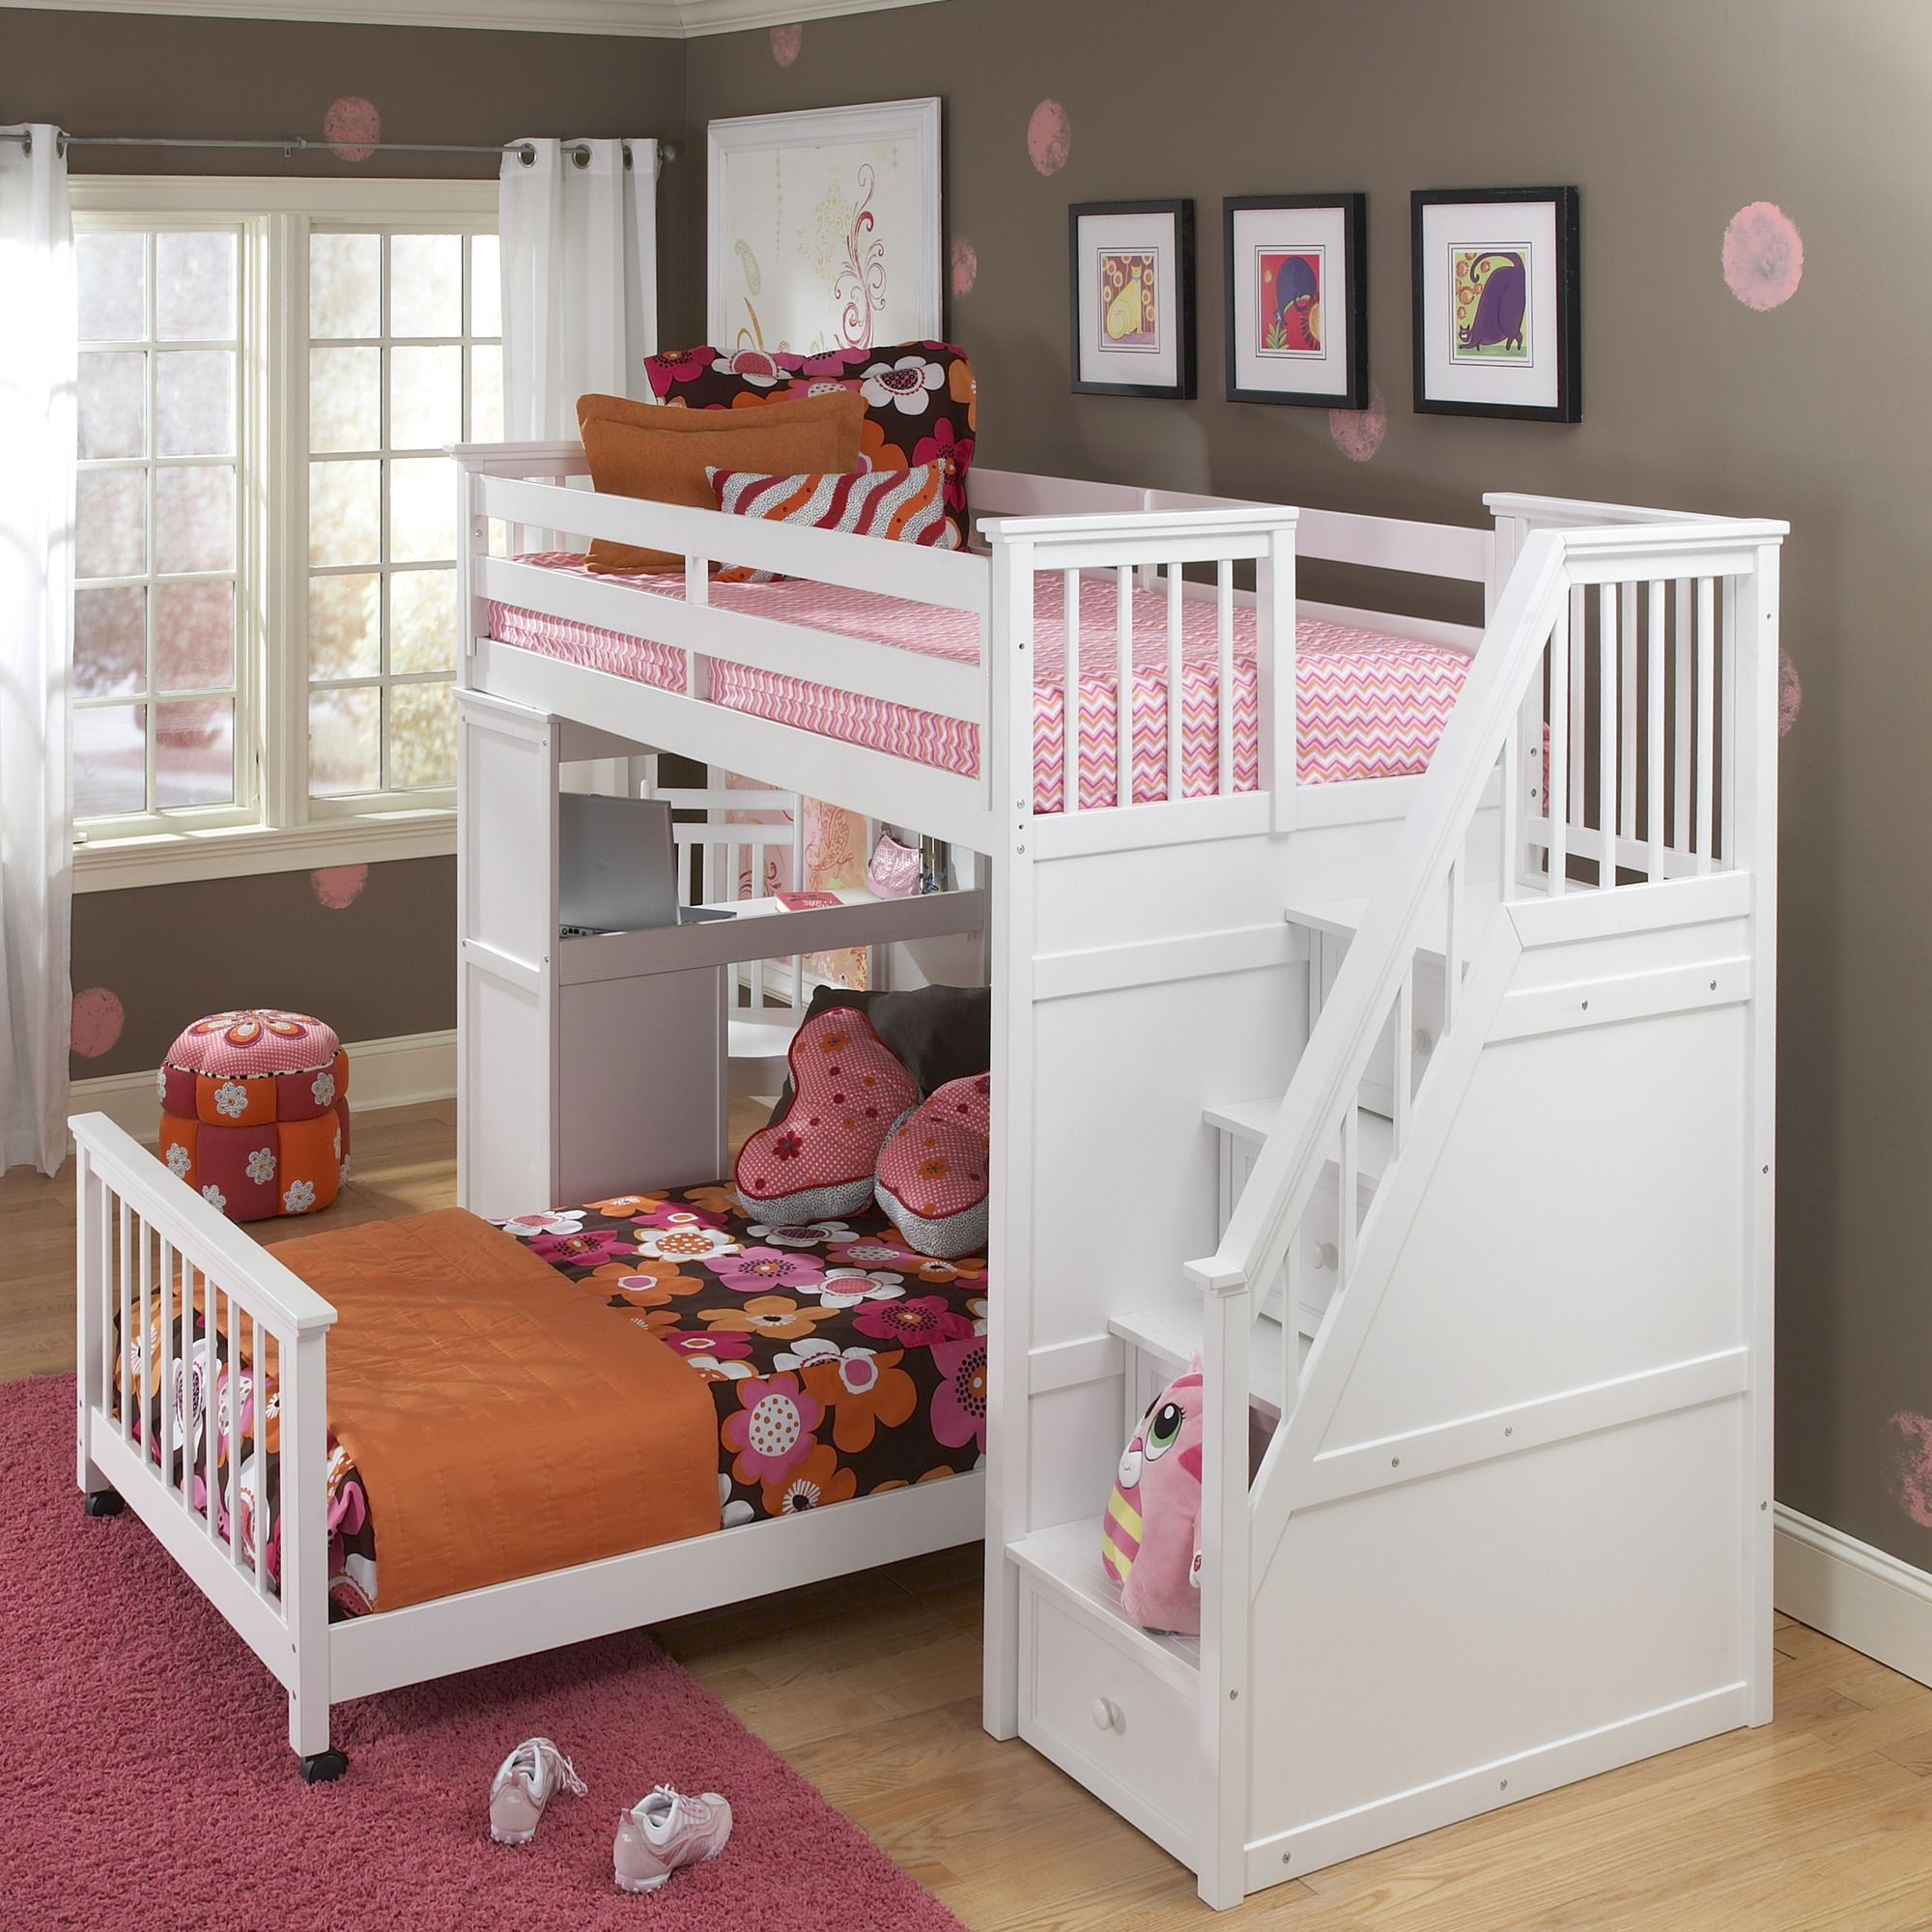 Double loft bed with stairs  I wonder if we could make this work with a double bed on the bottom